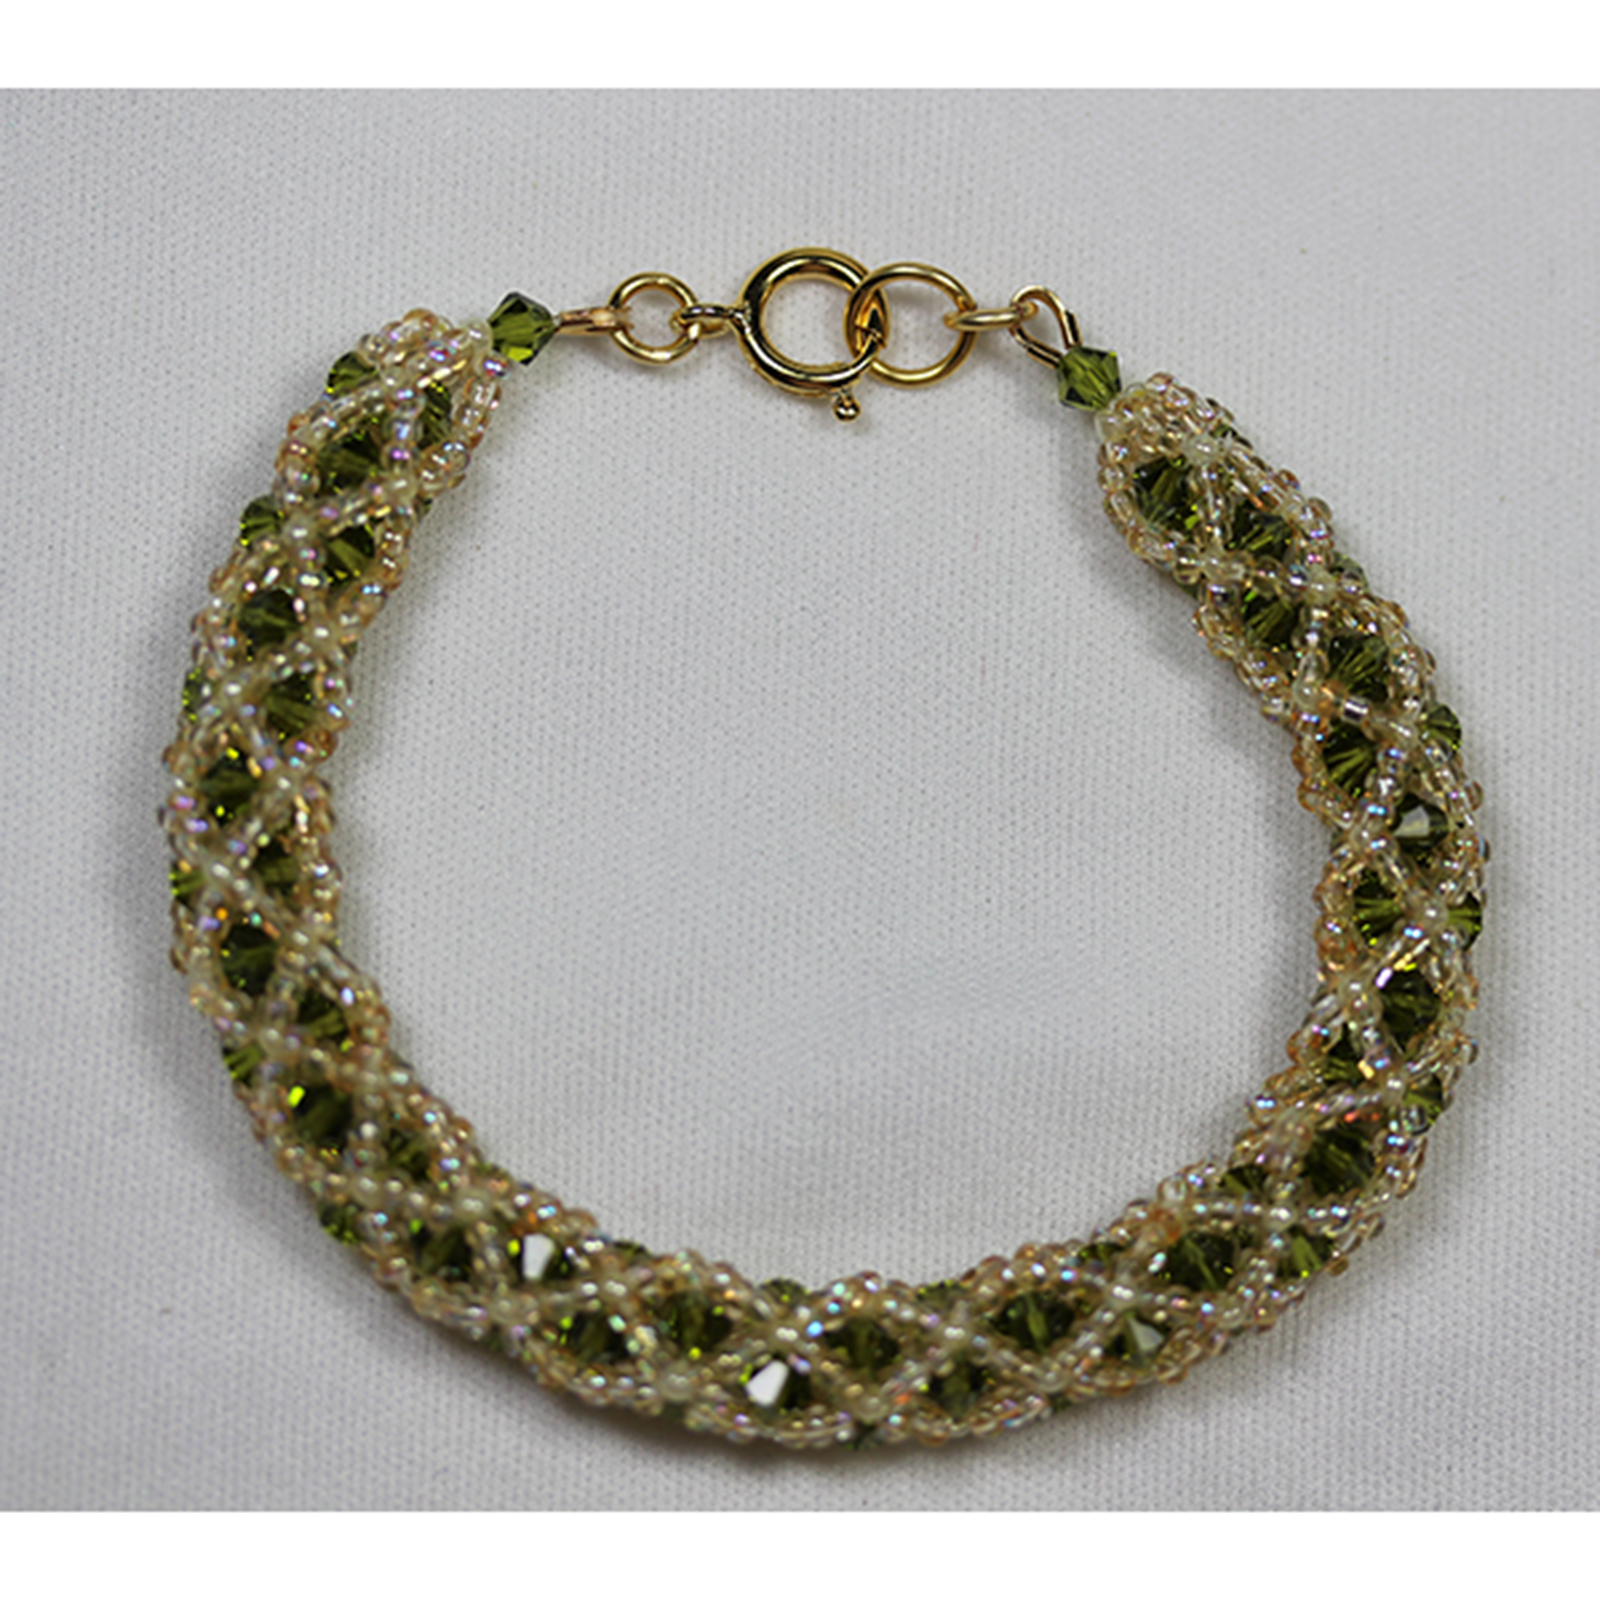 african item bridal free wedding new nigerian handmade beads from latest elegant sets designer accessories in jewelry